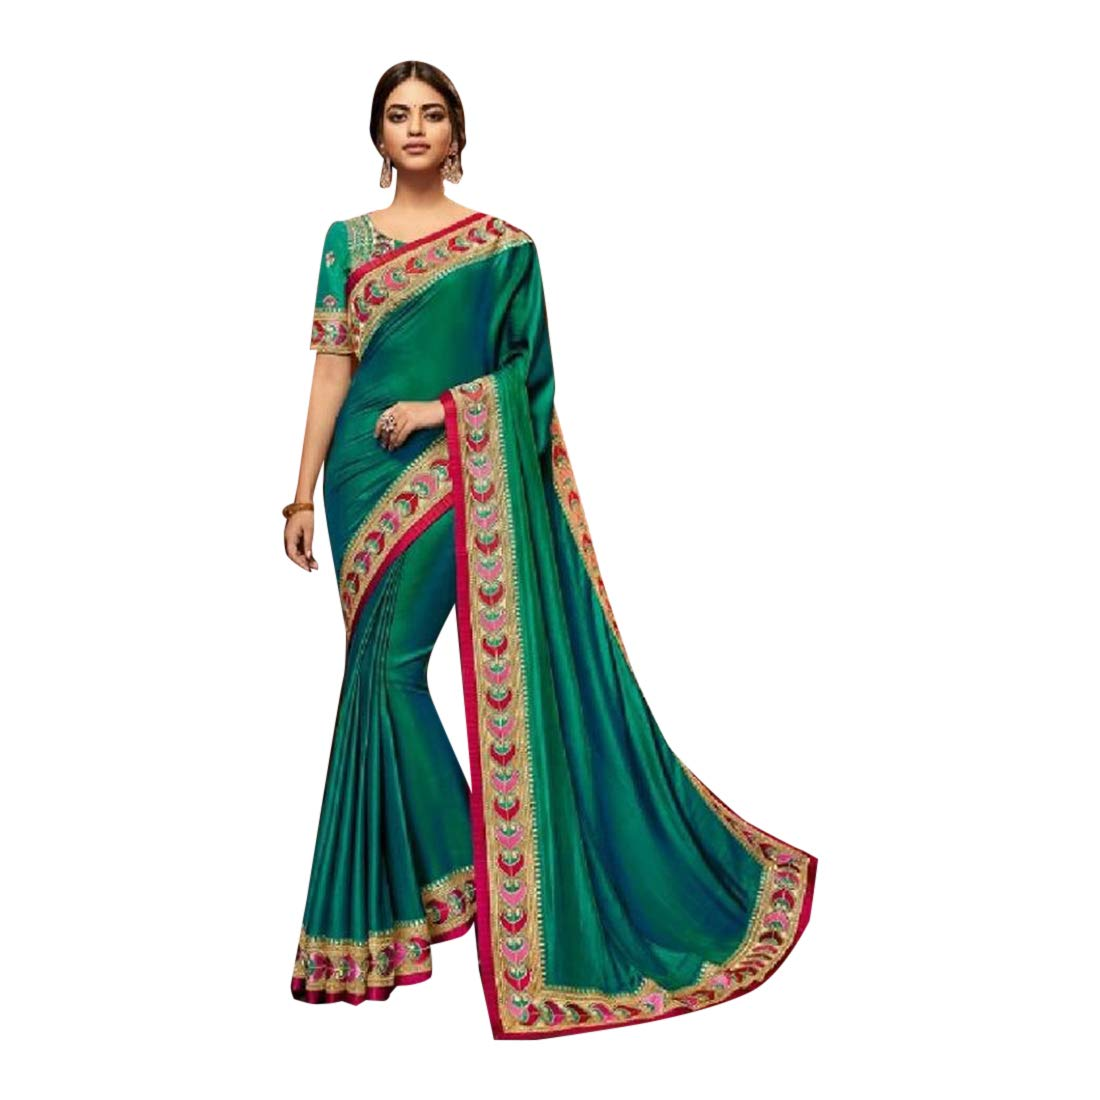 Indian Party wear Silk Saree with Embroidered Blouse Designer Sari for Women Evening dress 7572